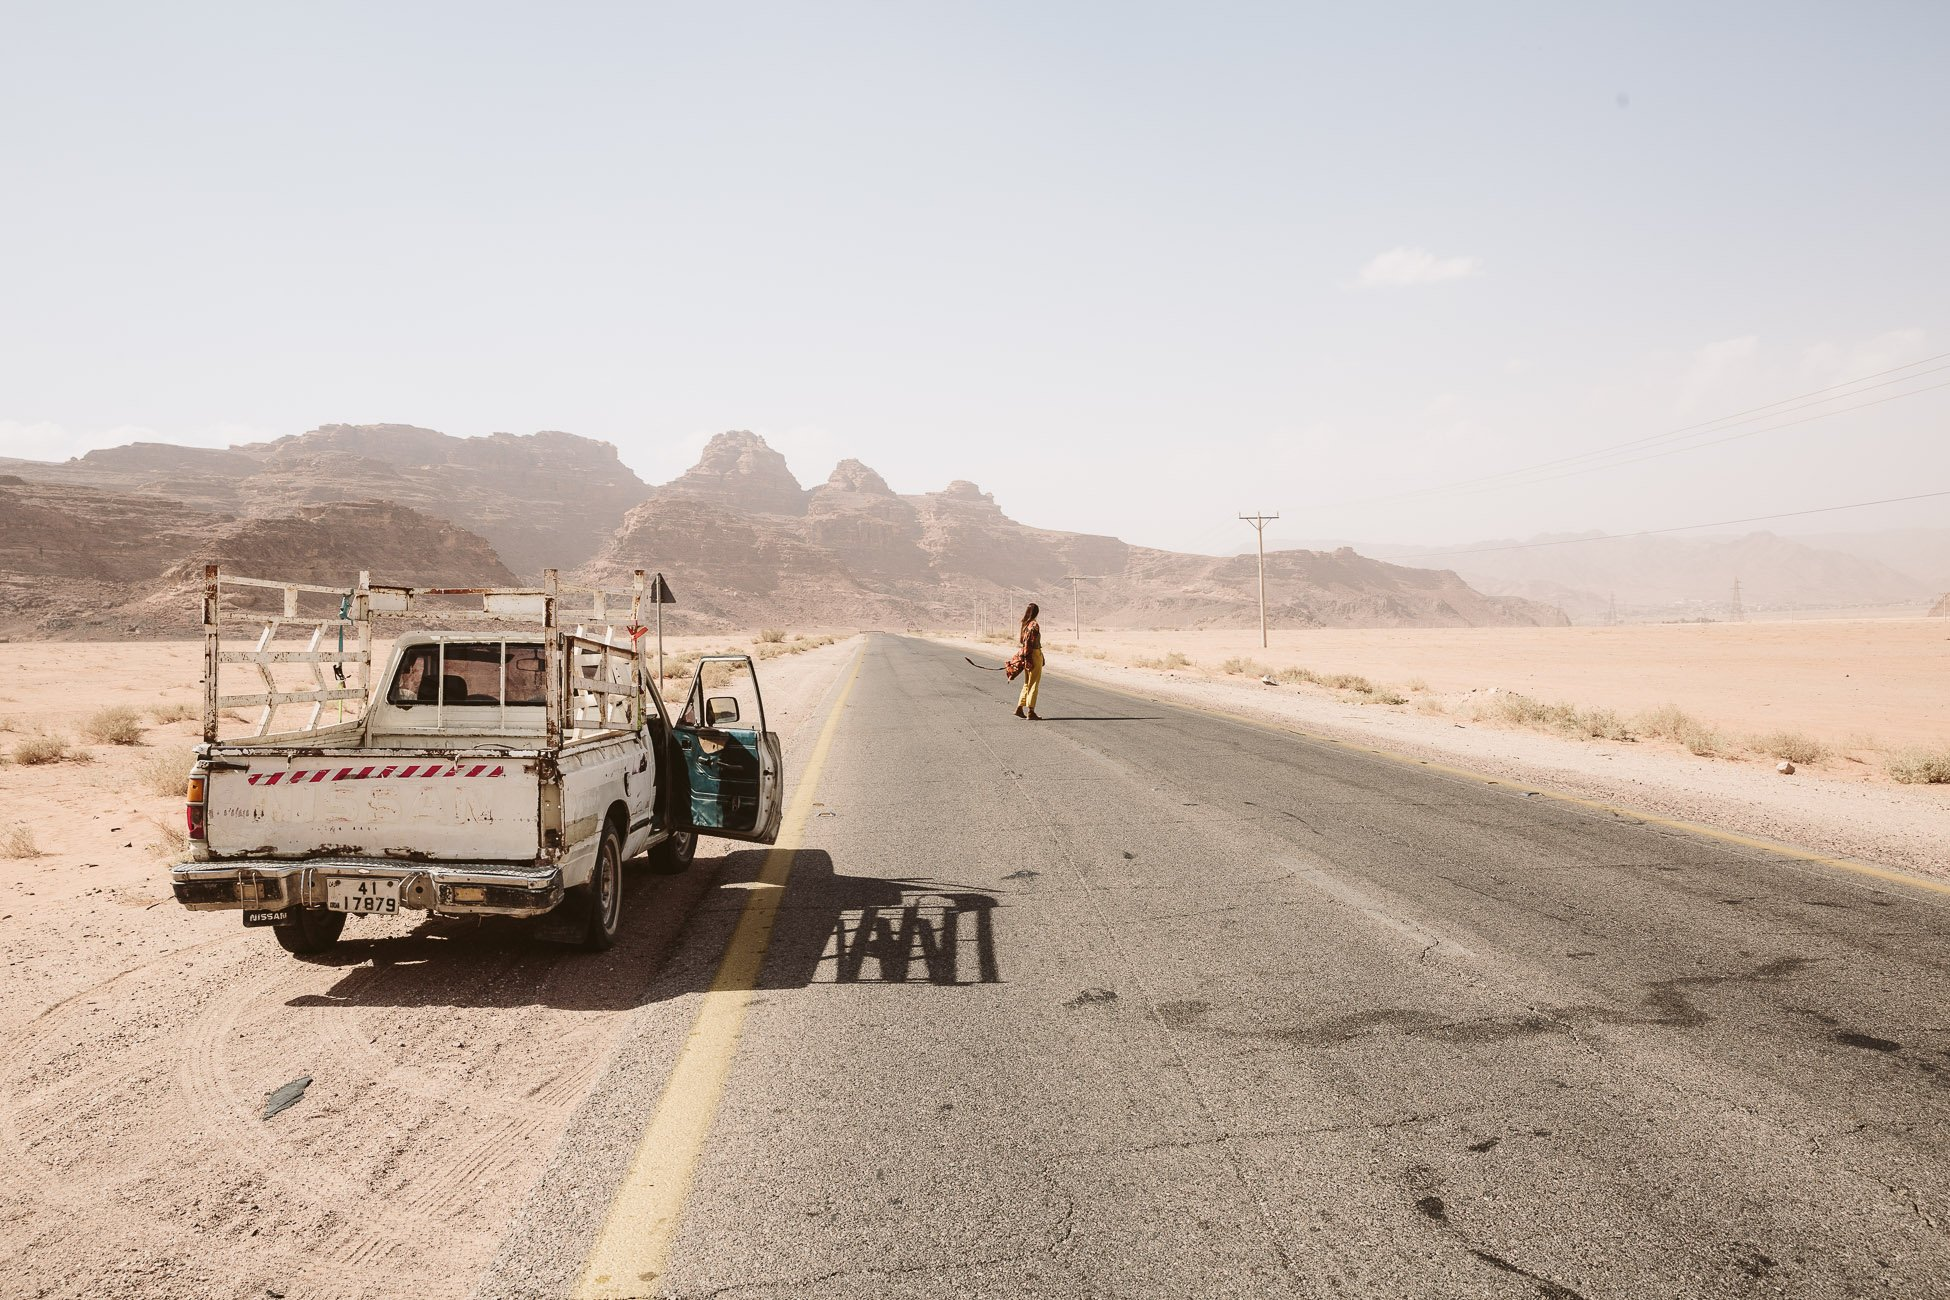 On the road through Wadi Rum